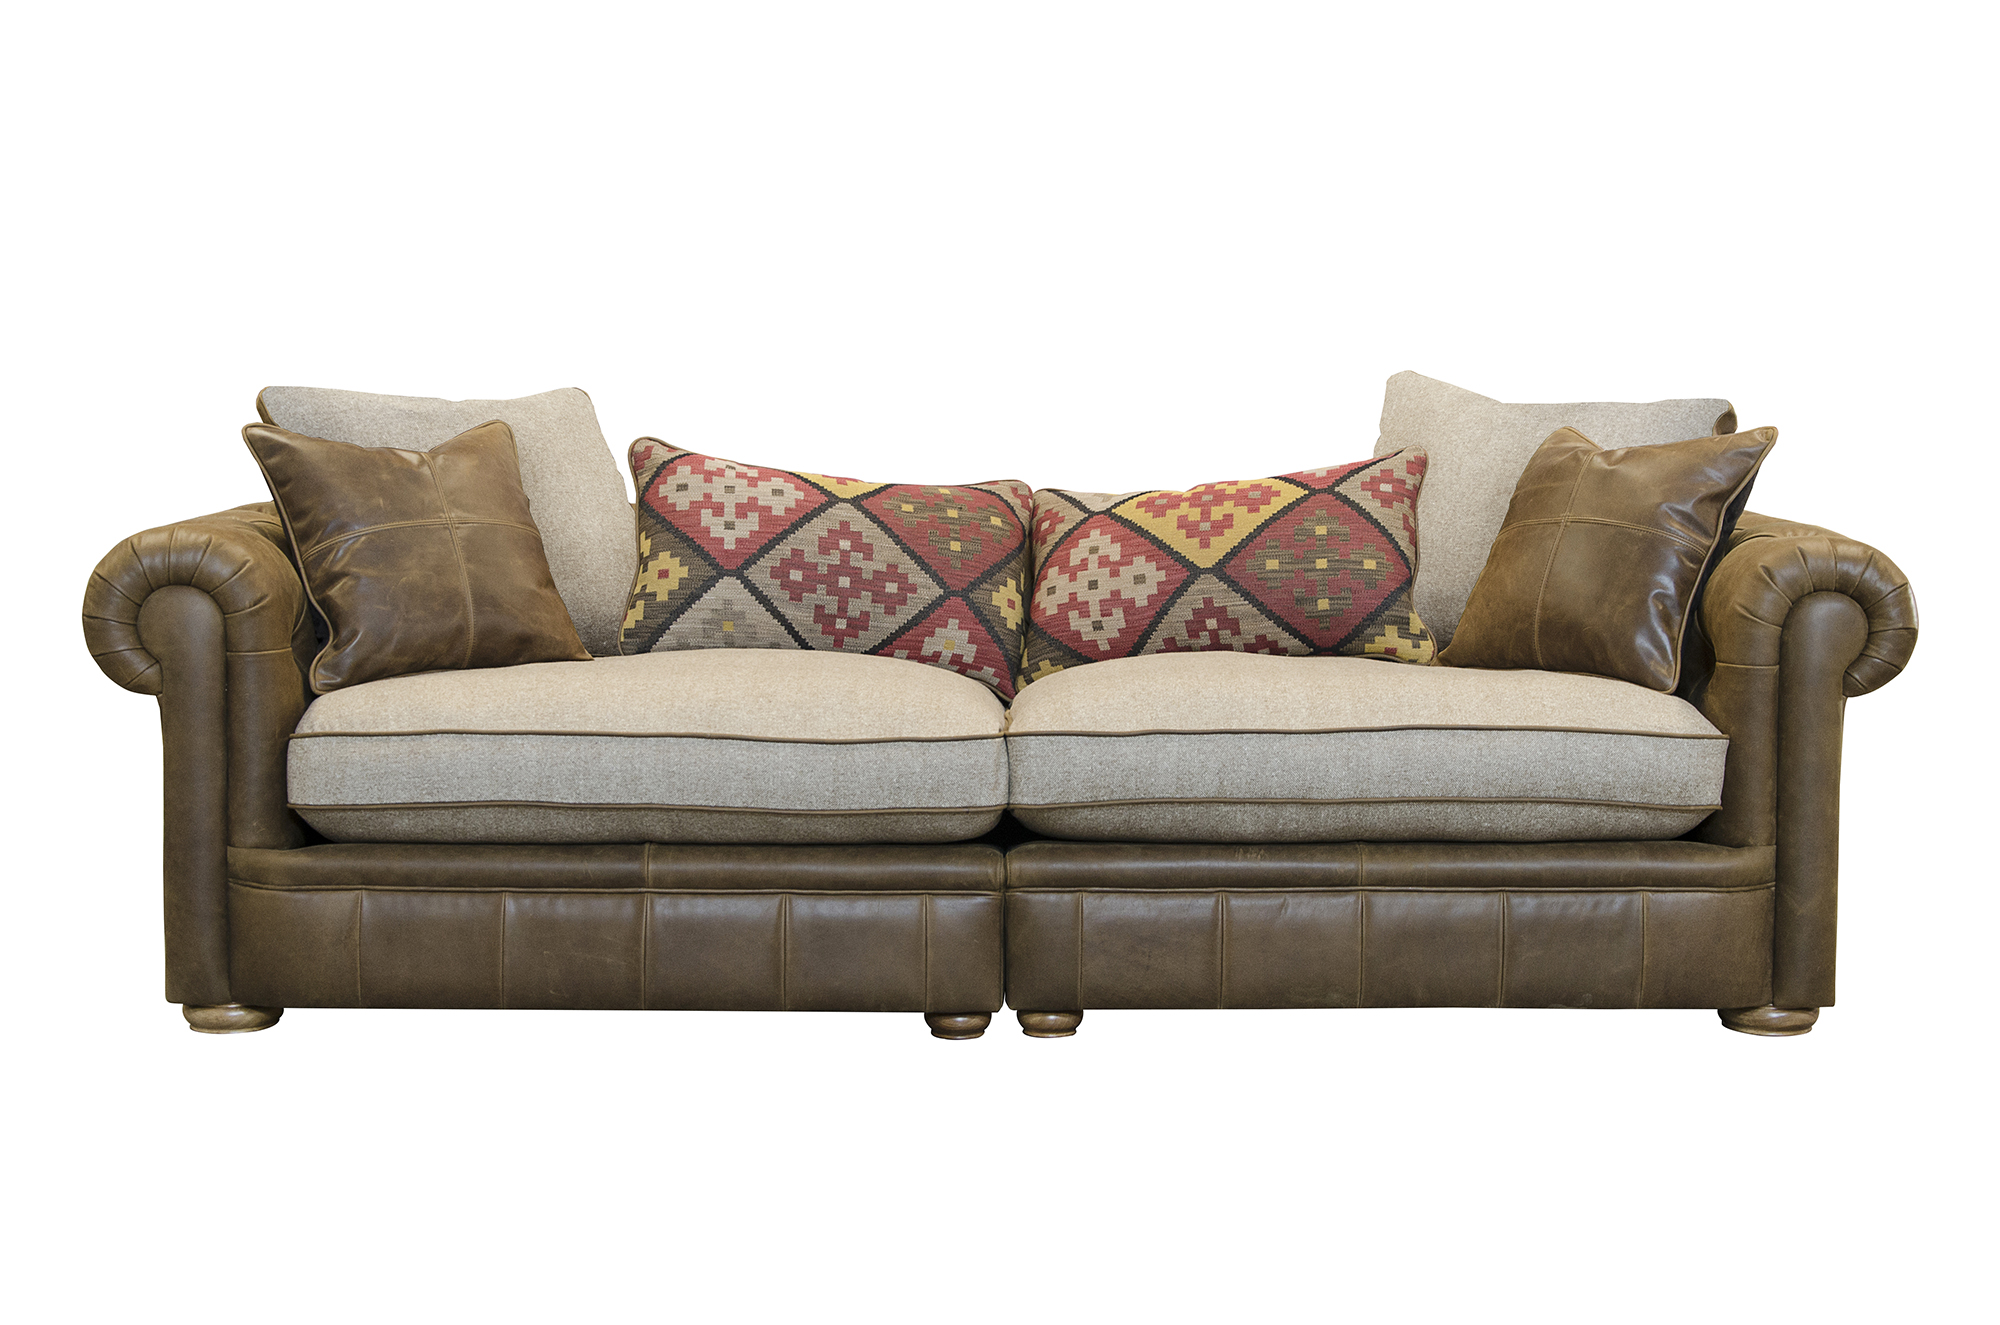 The Retreat Maxi Split Sofa in Jin Brown